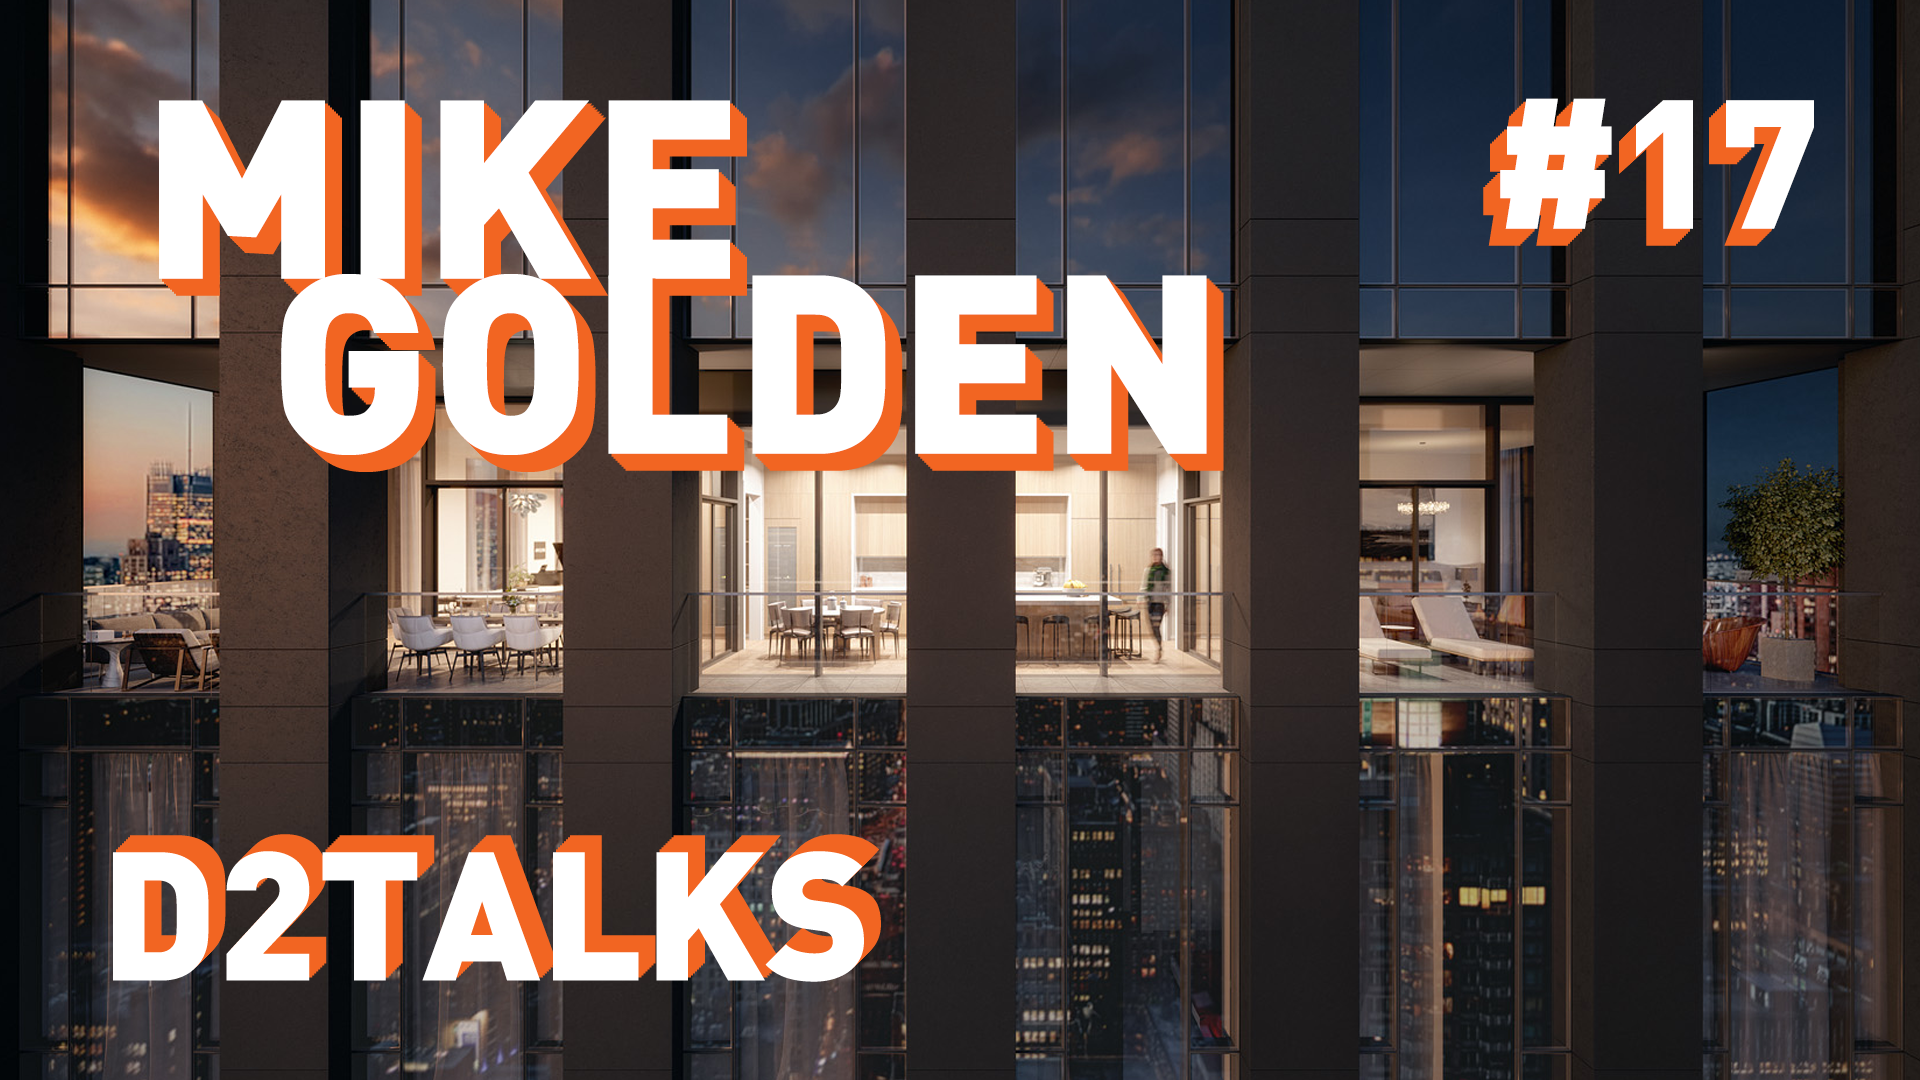 D2 Talks interview with Mike Golden of Three Marks.